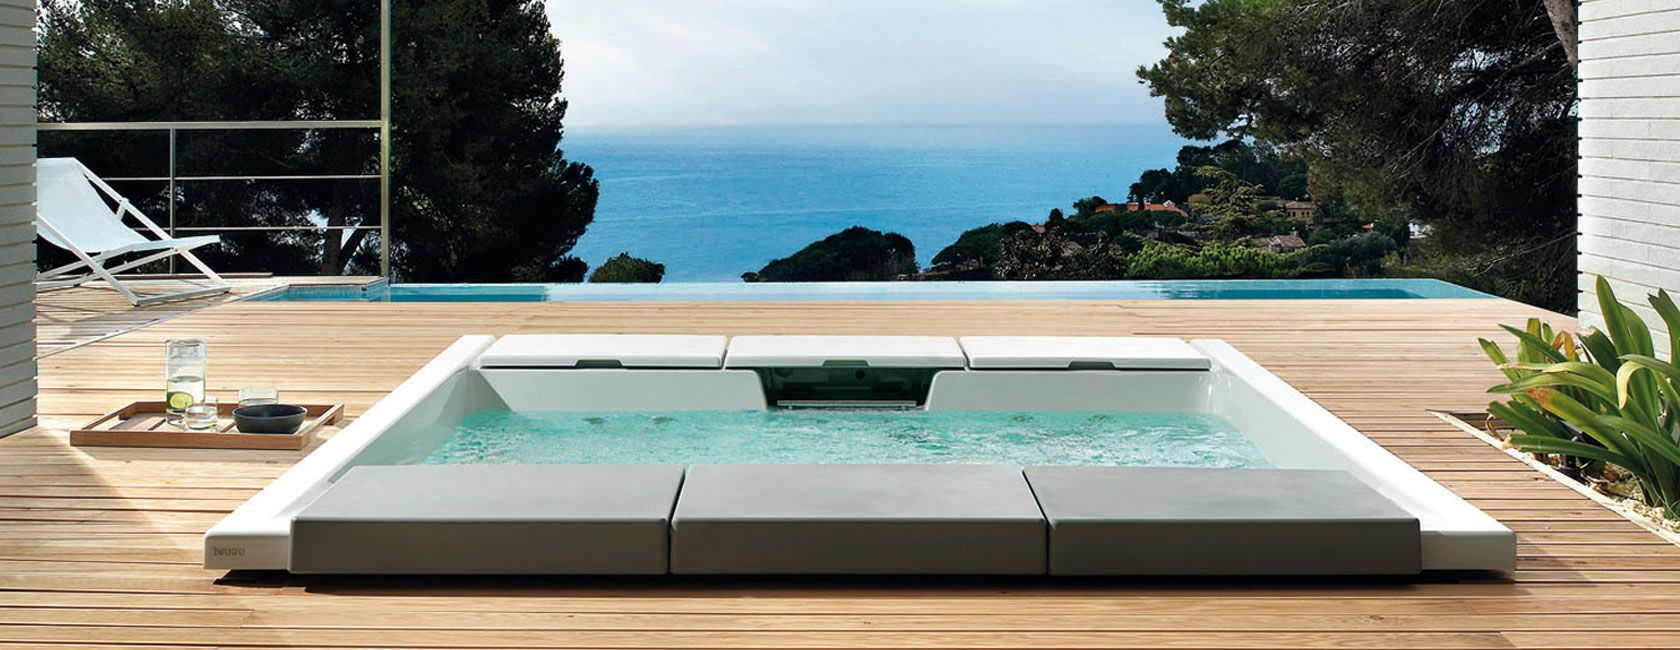 Bust of Built-In Hot Tubs: Provides Luxury and Extra Comfort ...